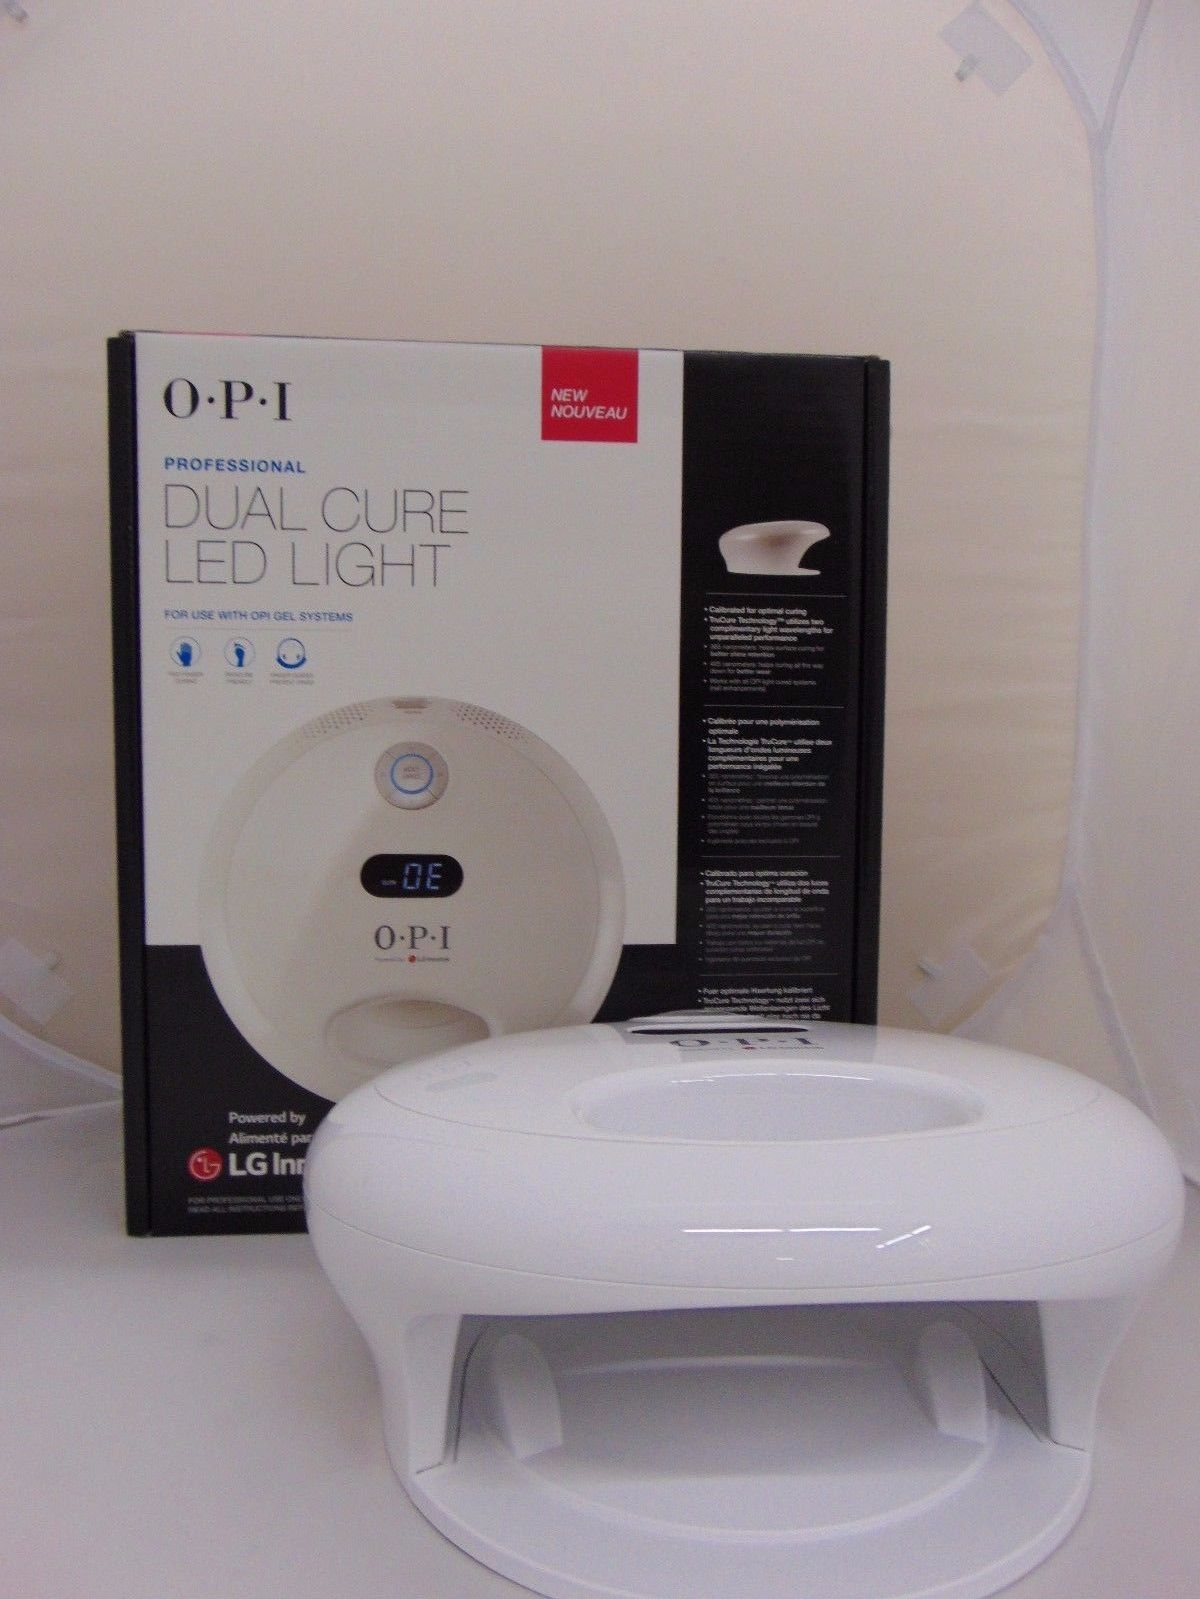 OPI Professional Dual Cure LED Light ? GL902   Walmart.com